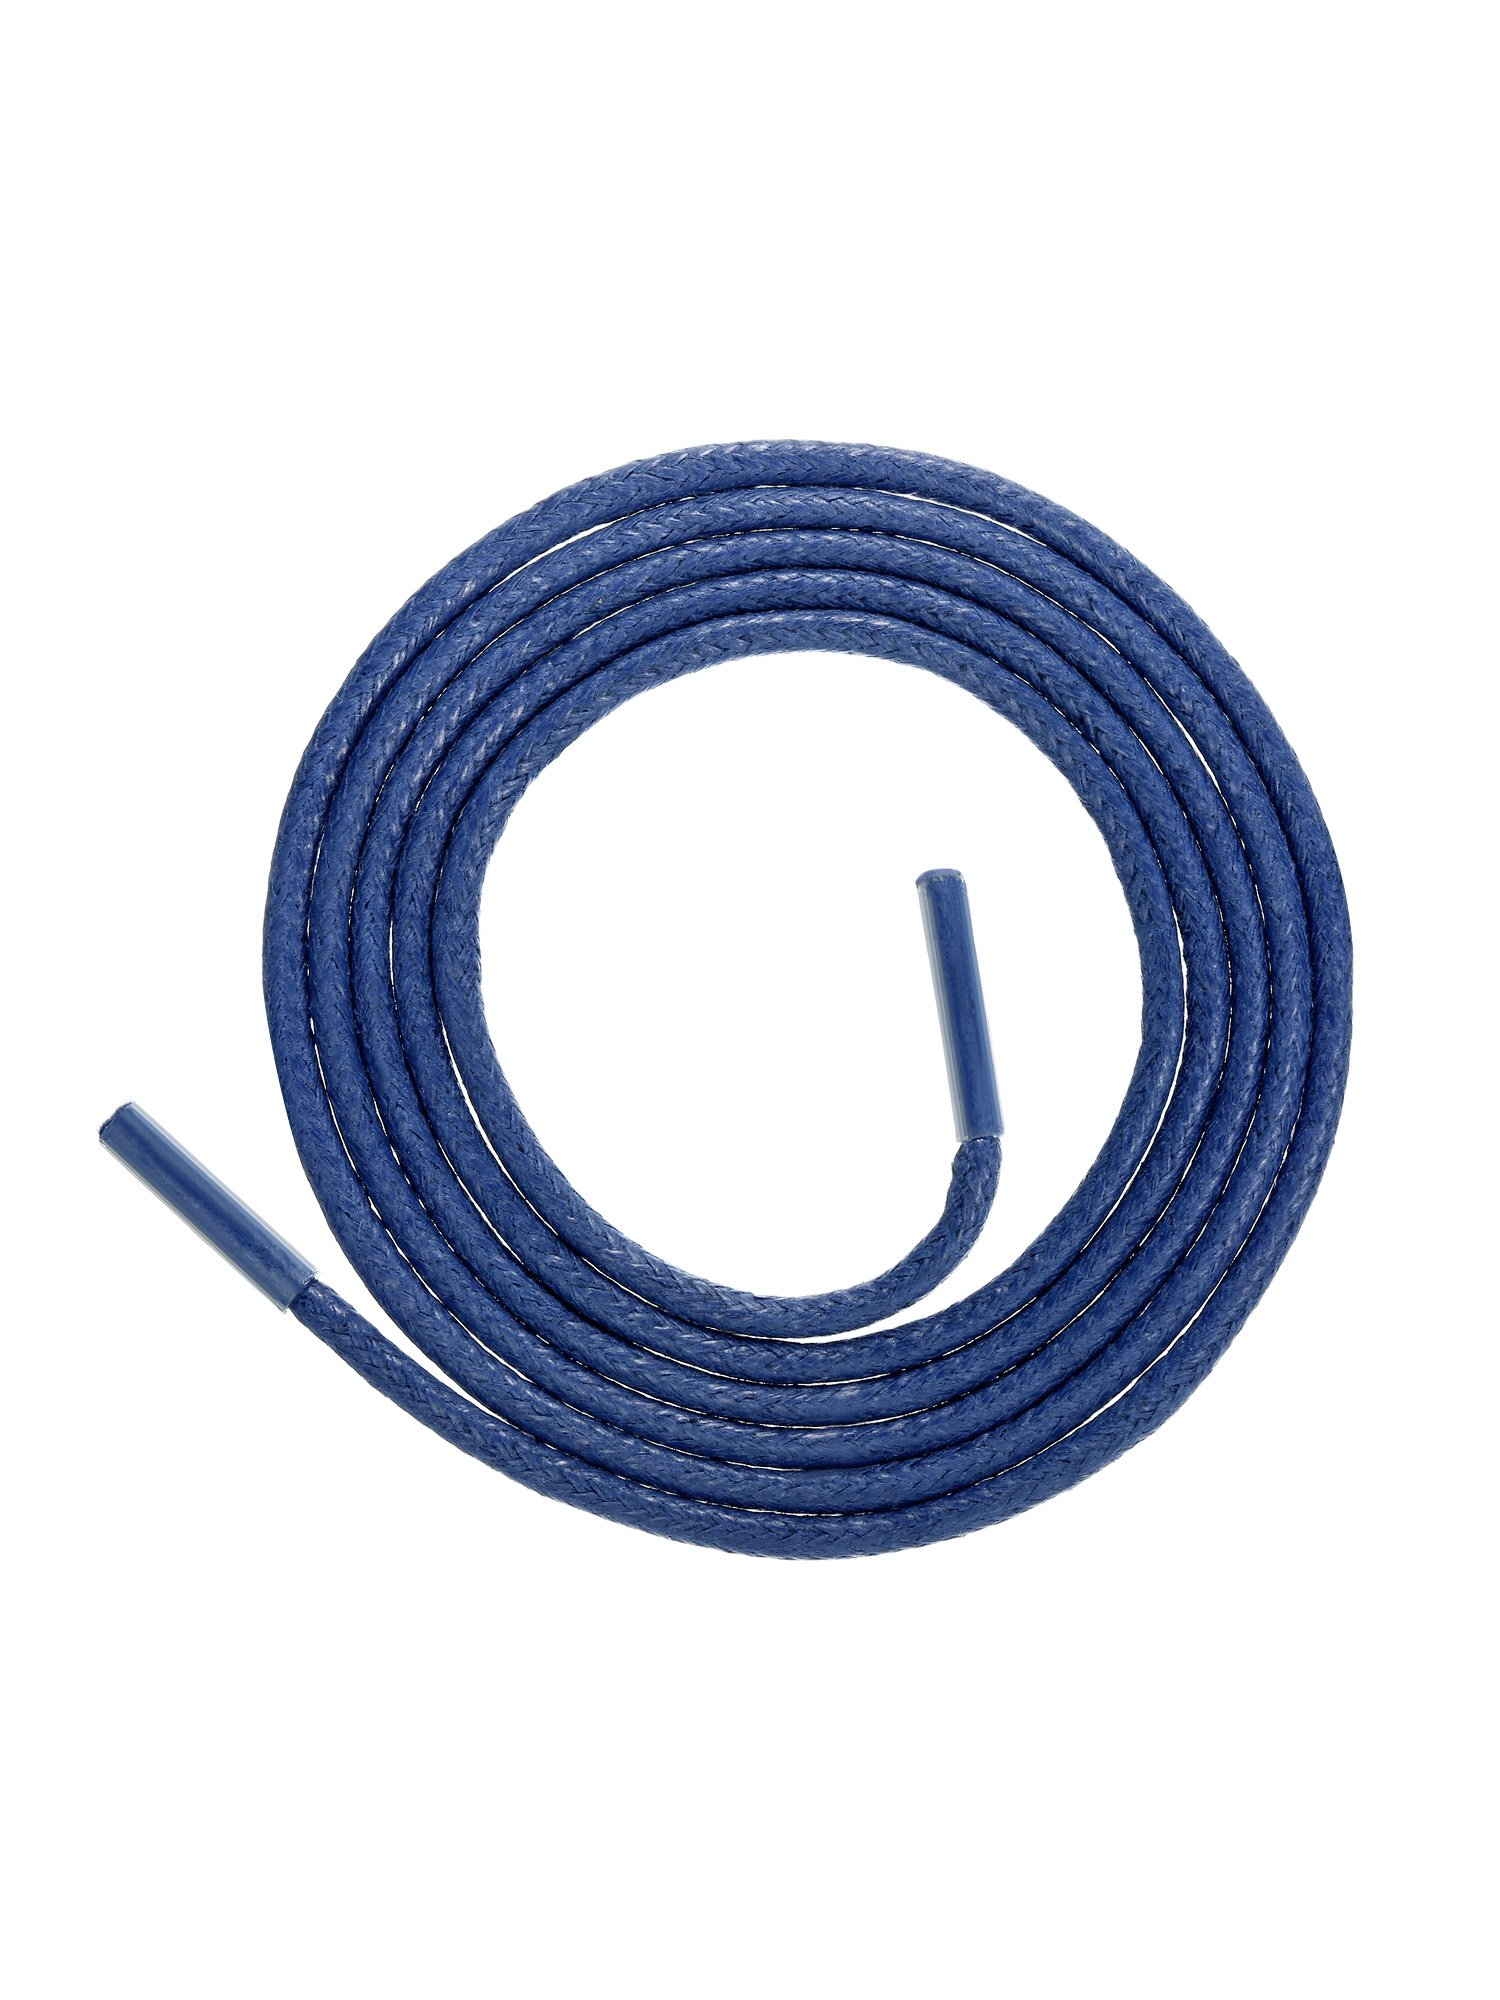 Jovitec Waxed Oxford Shoelaces Cotton Round Waxed Shoe Laces for Dress Shoes, 9 Colors by Jovitec (Image #4)